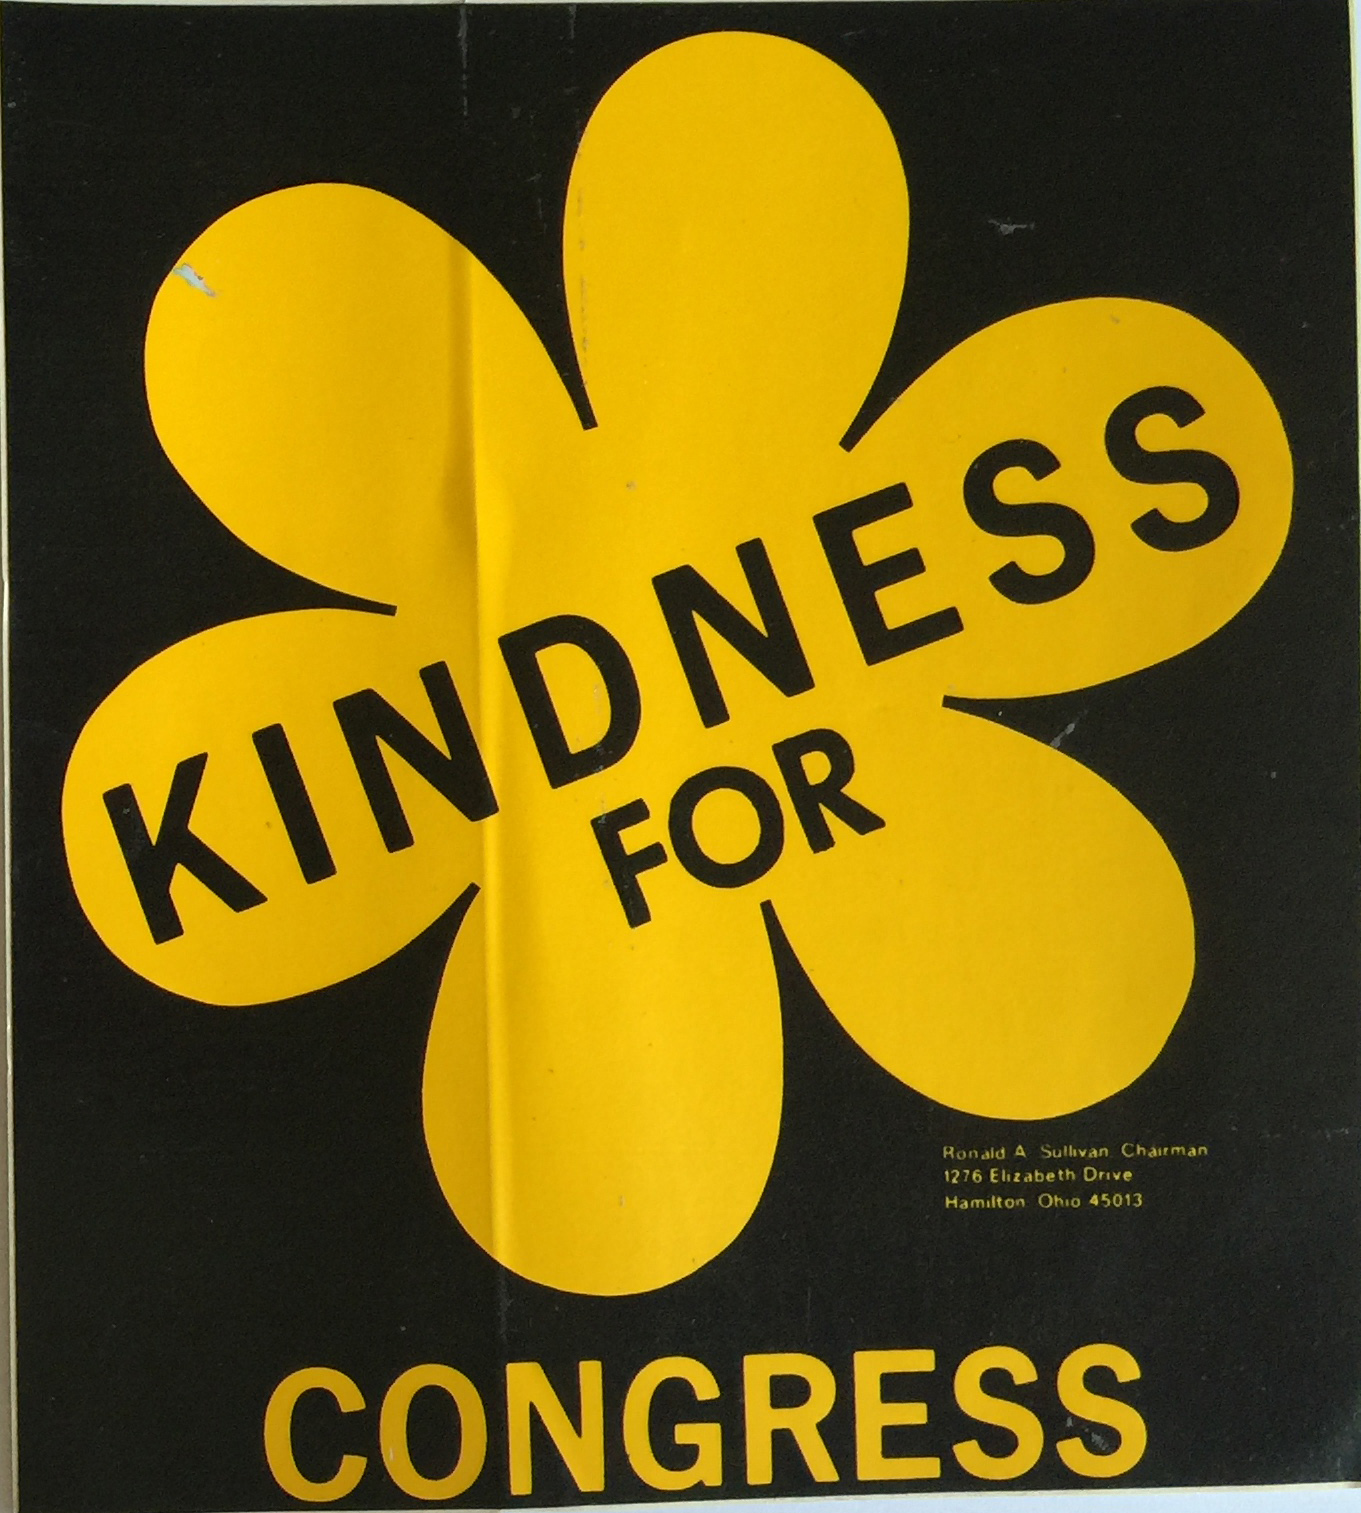 Sticker-congress KINDNESS 1.jpg